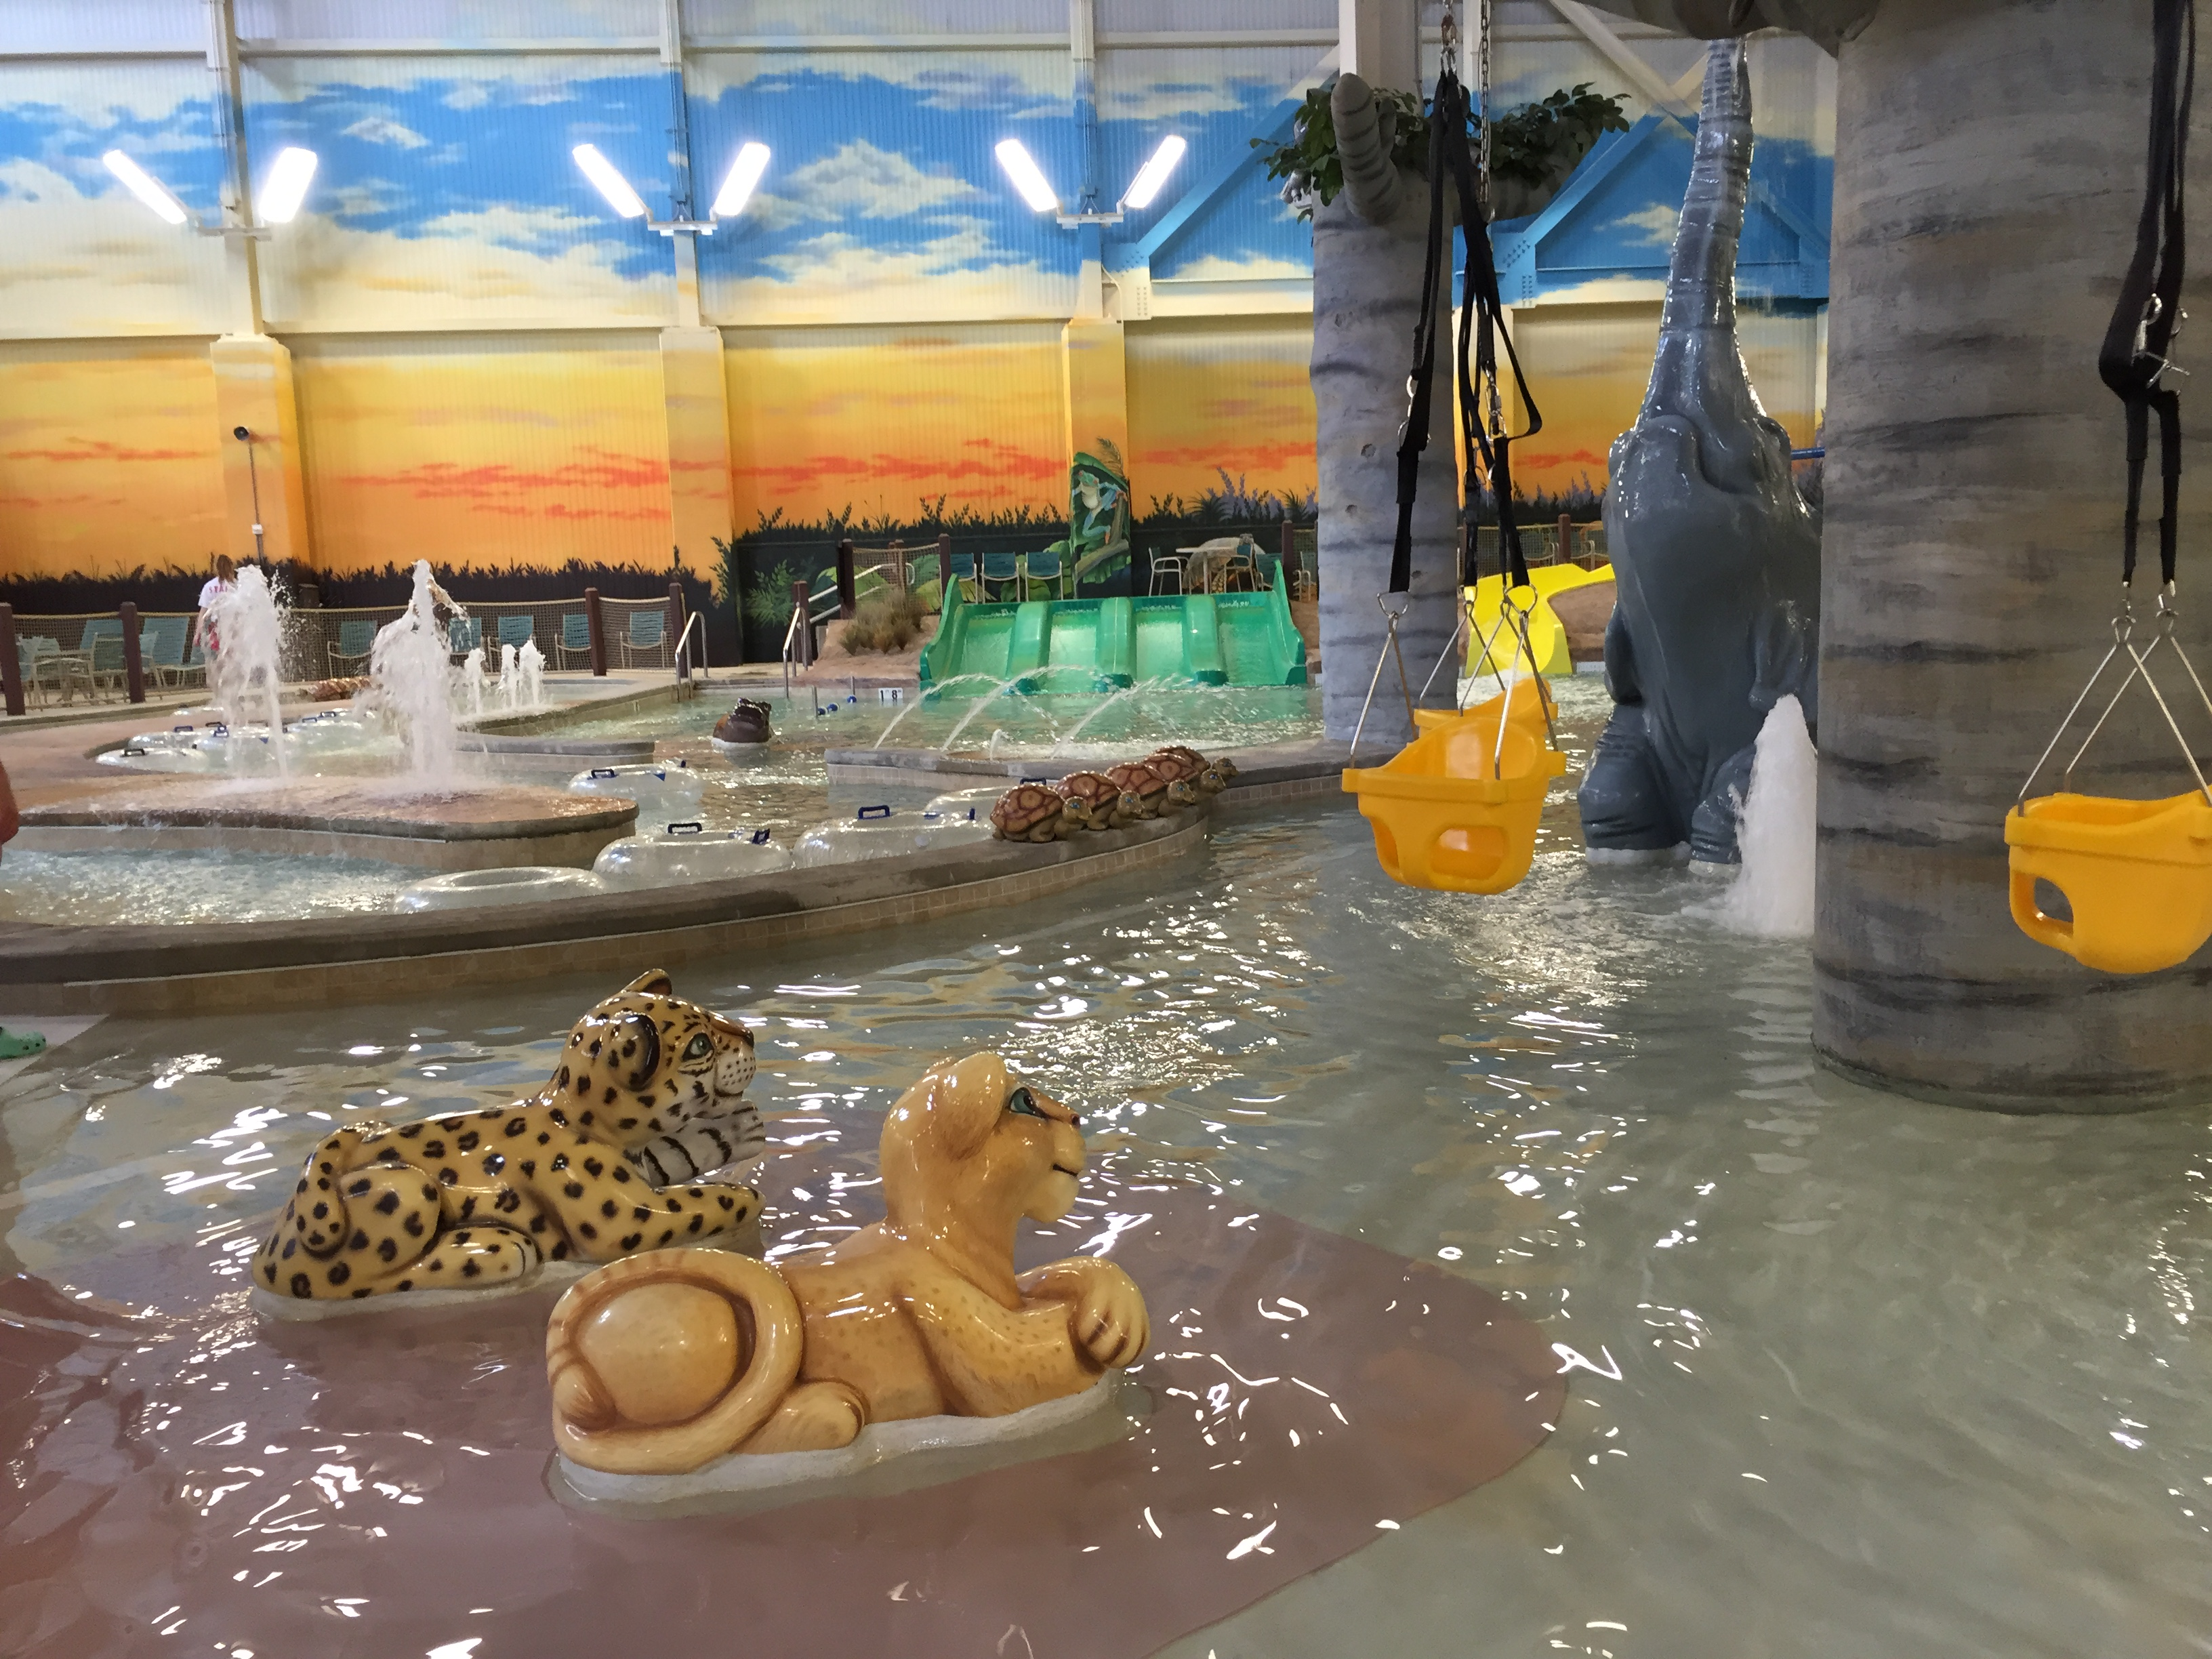 Kalahari Resort Poconos Pa Been There Done That With Kids